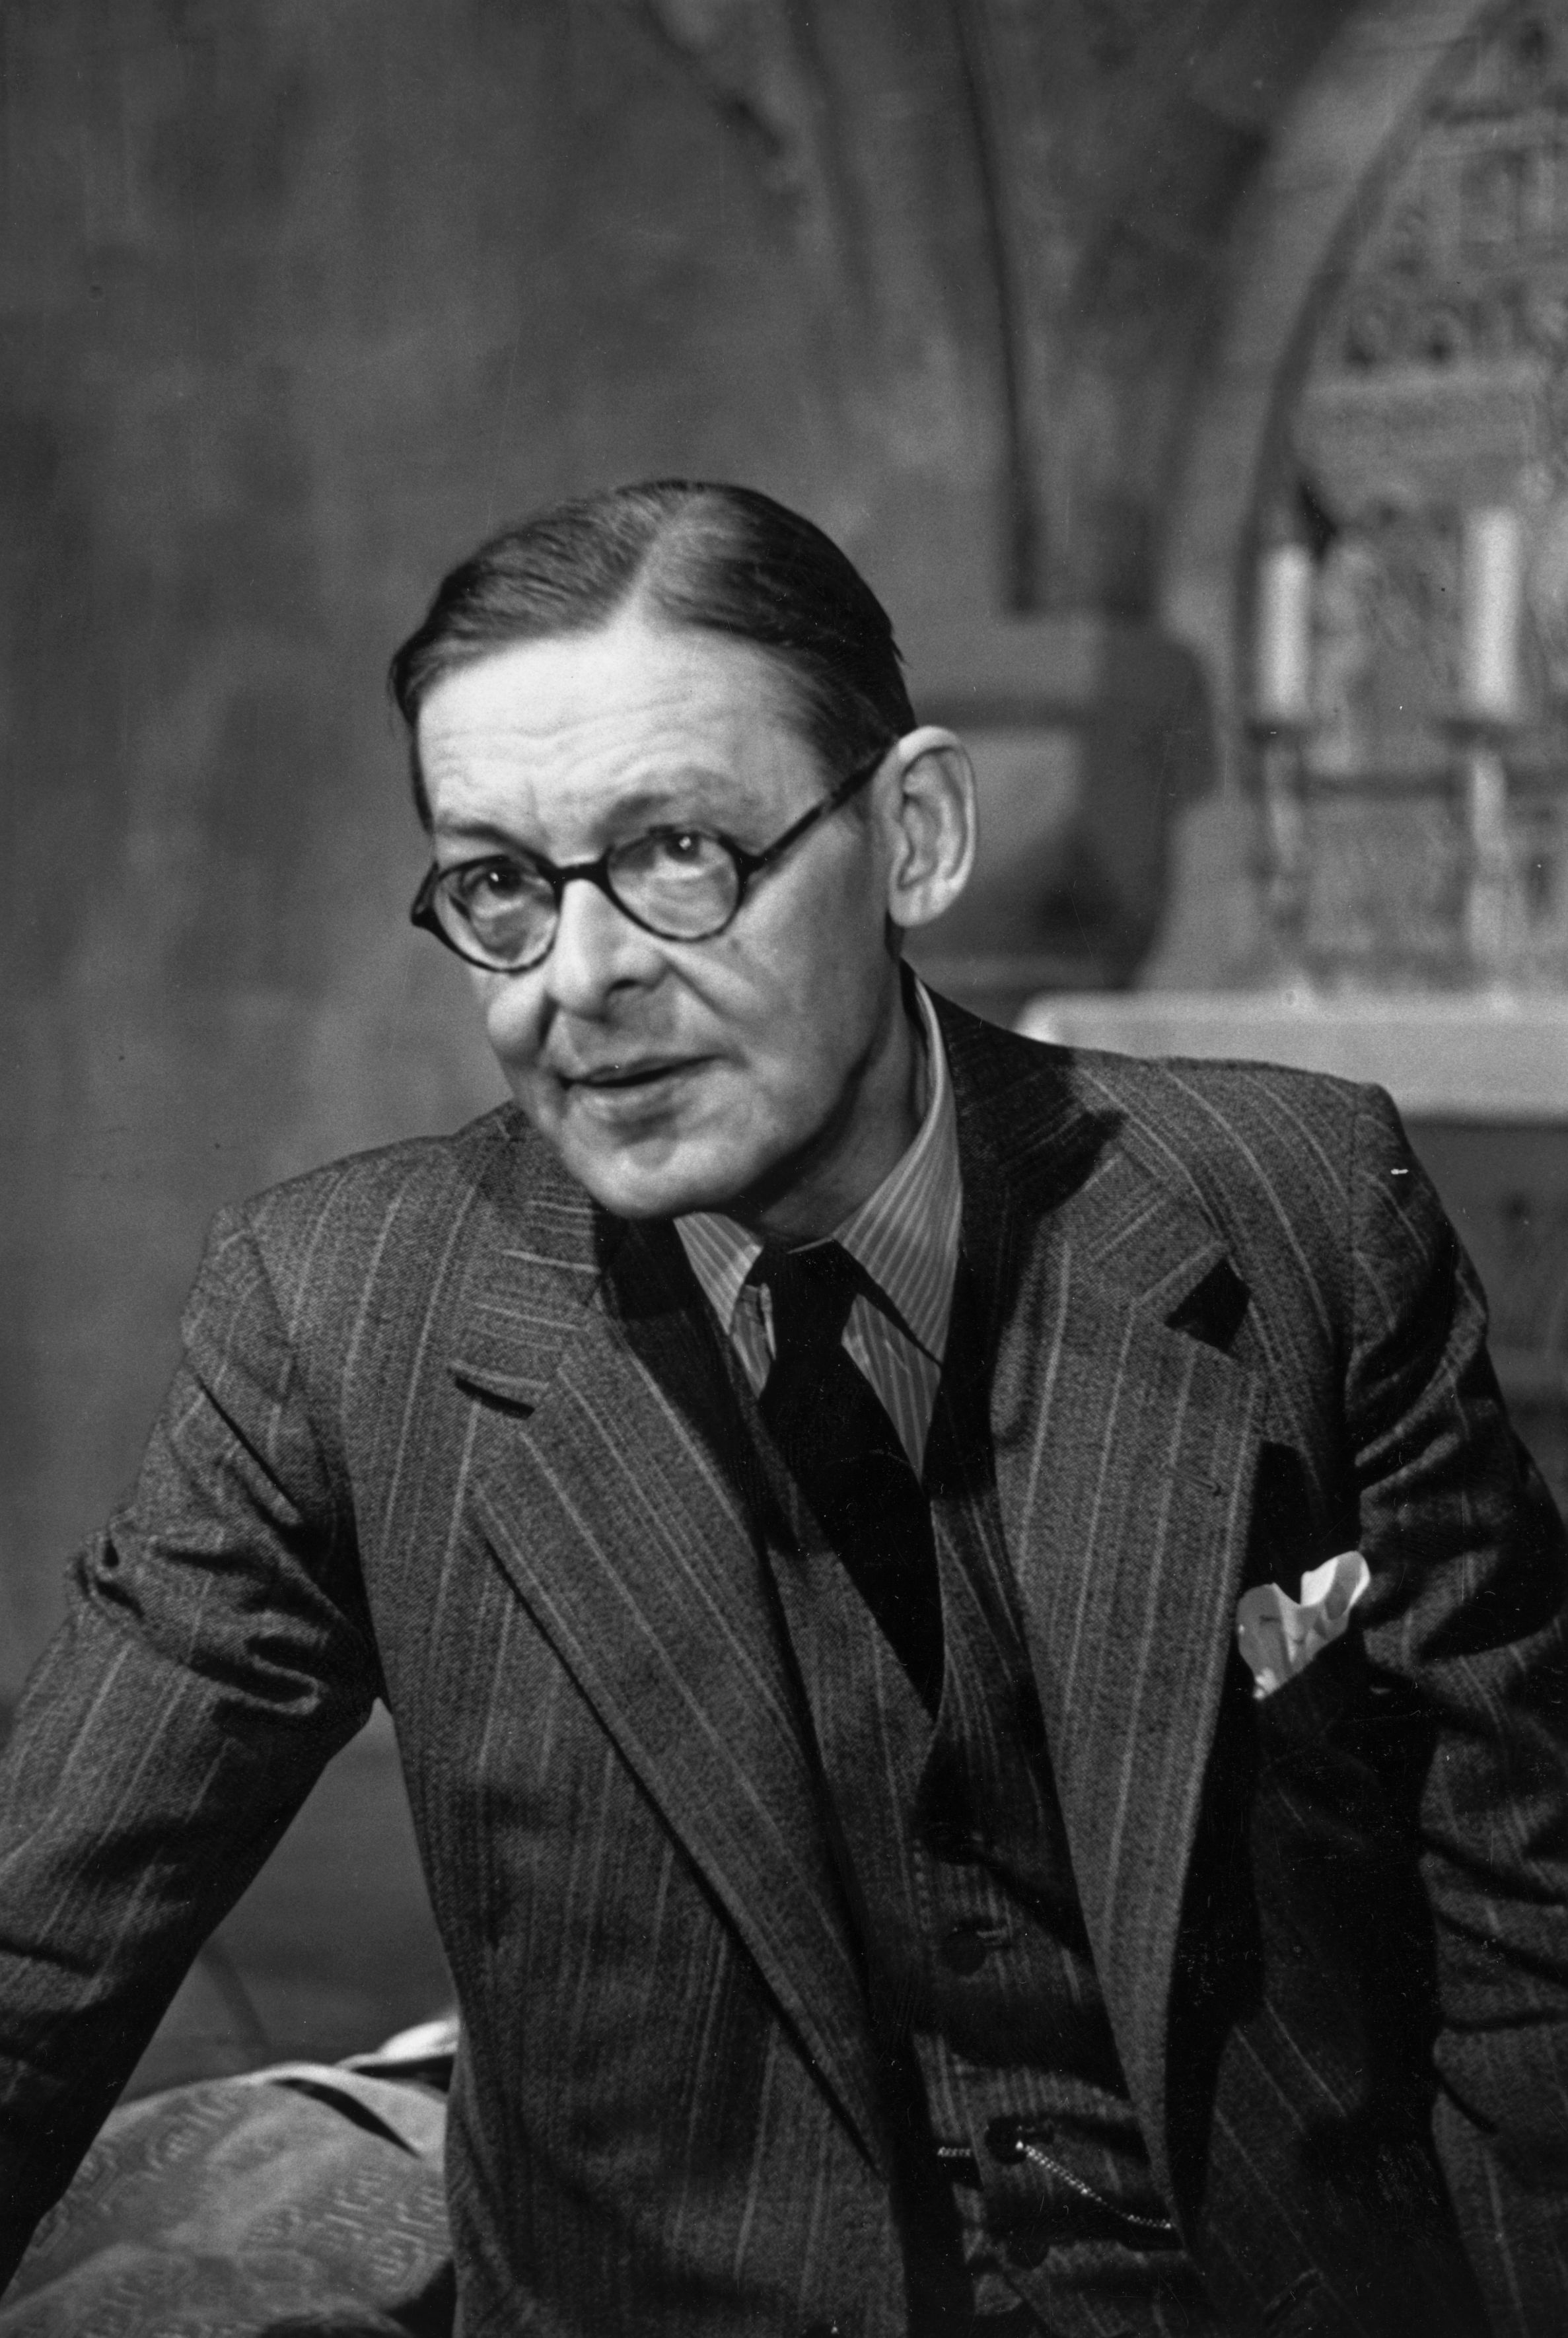 journeys t s eliot Journey of the magi by ts eliot poem can be found here line construction, and sham or genuine poetics – minor editing, jan 20.